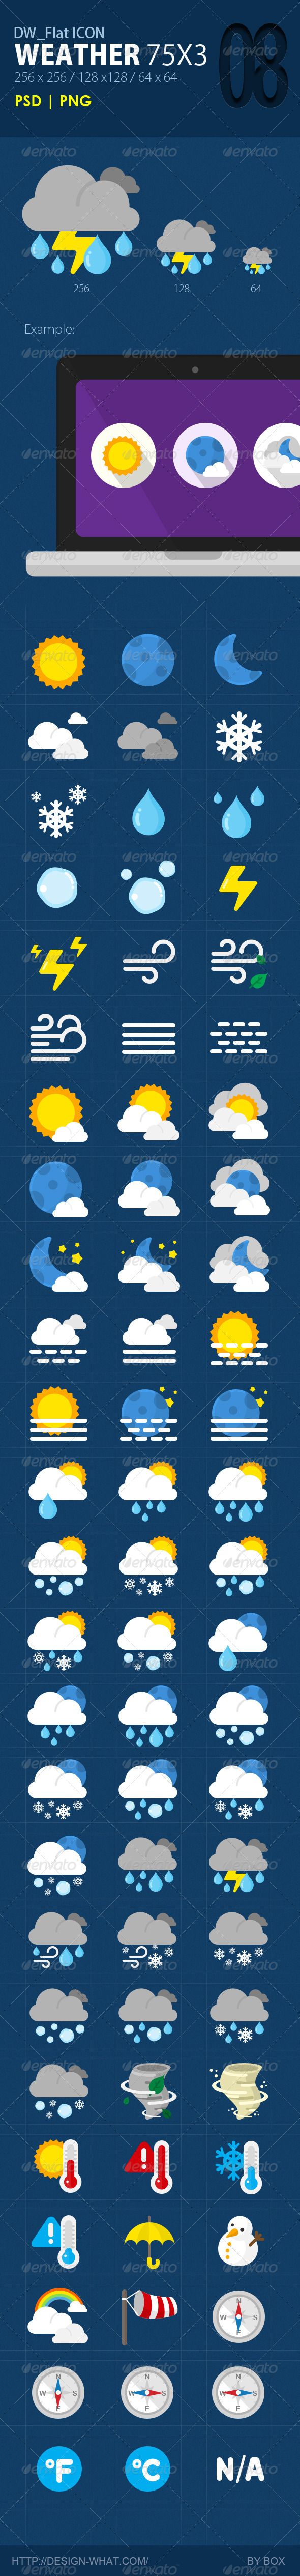 GraphicRiver 75 Flat ICONs Weather 5964356